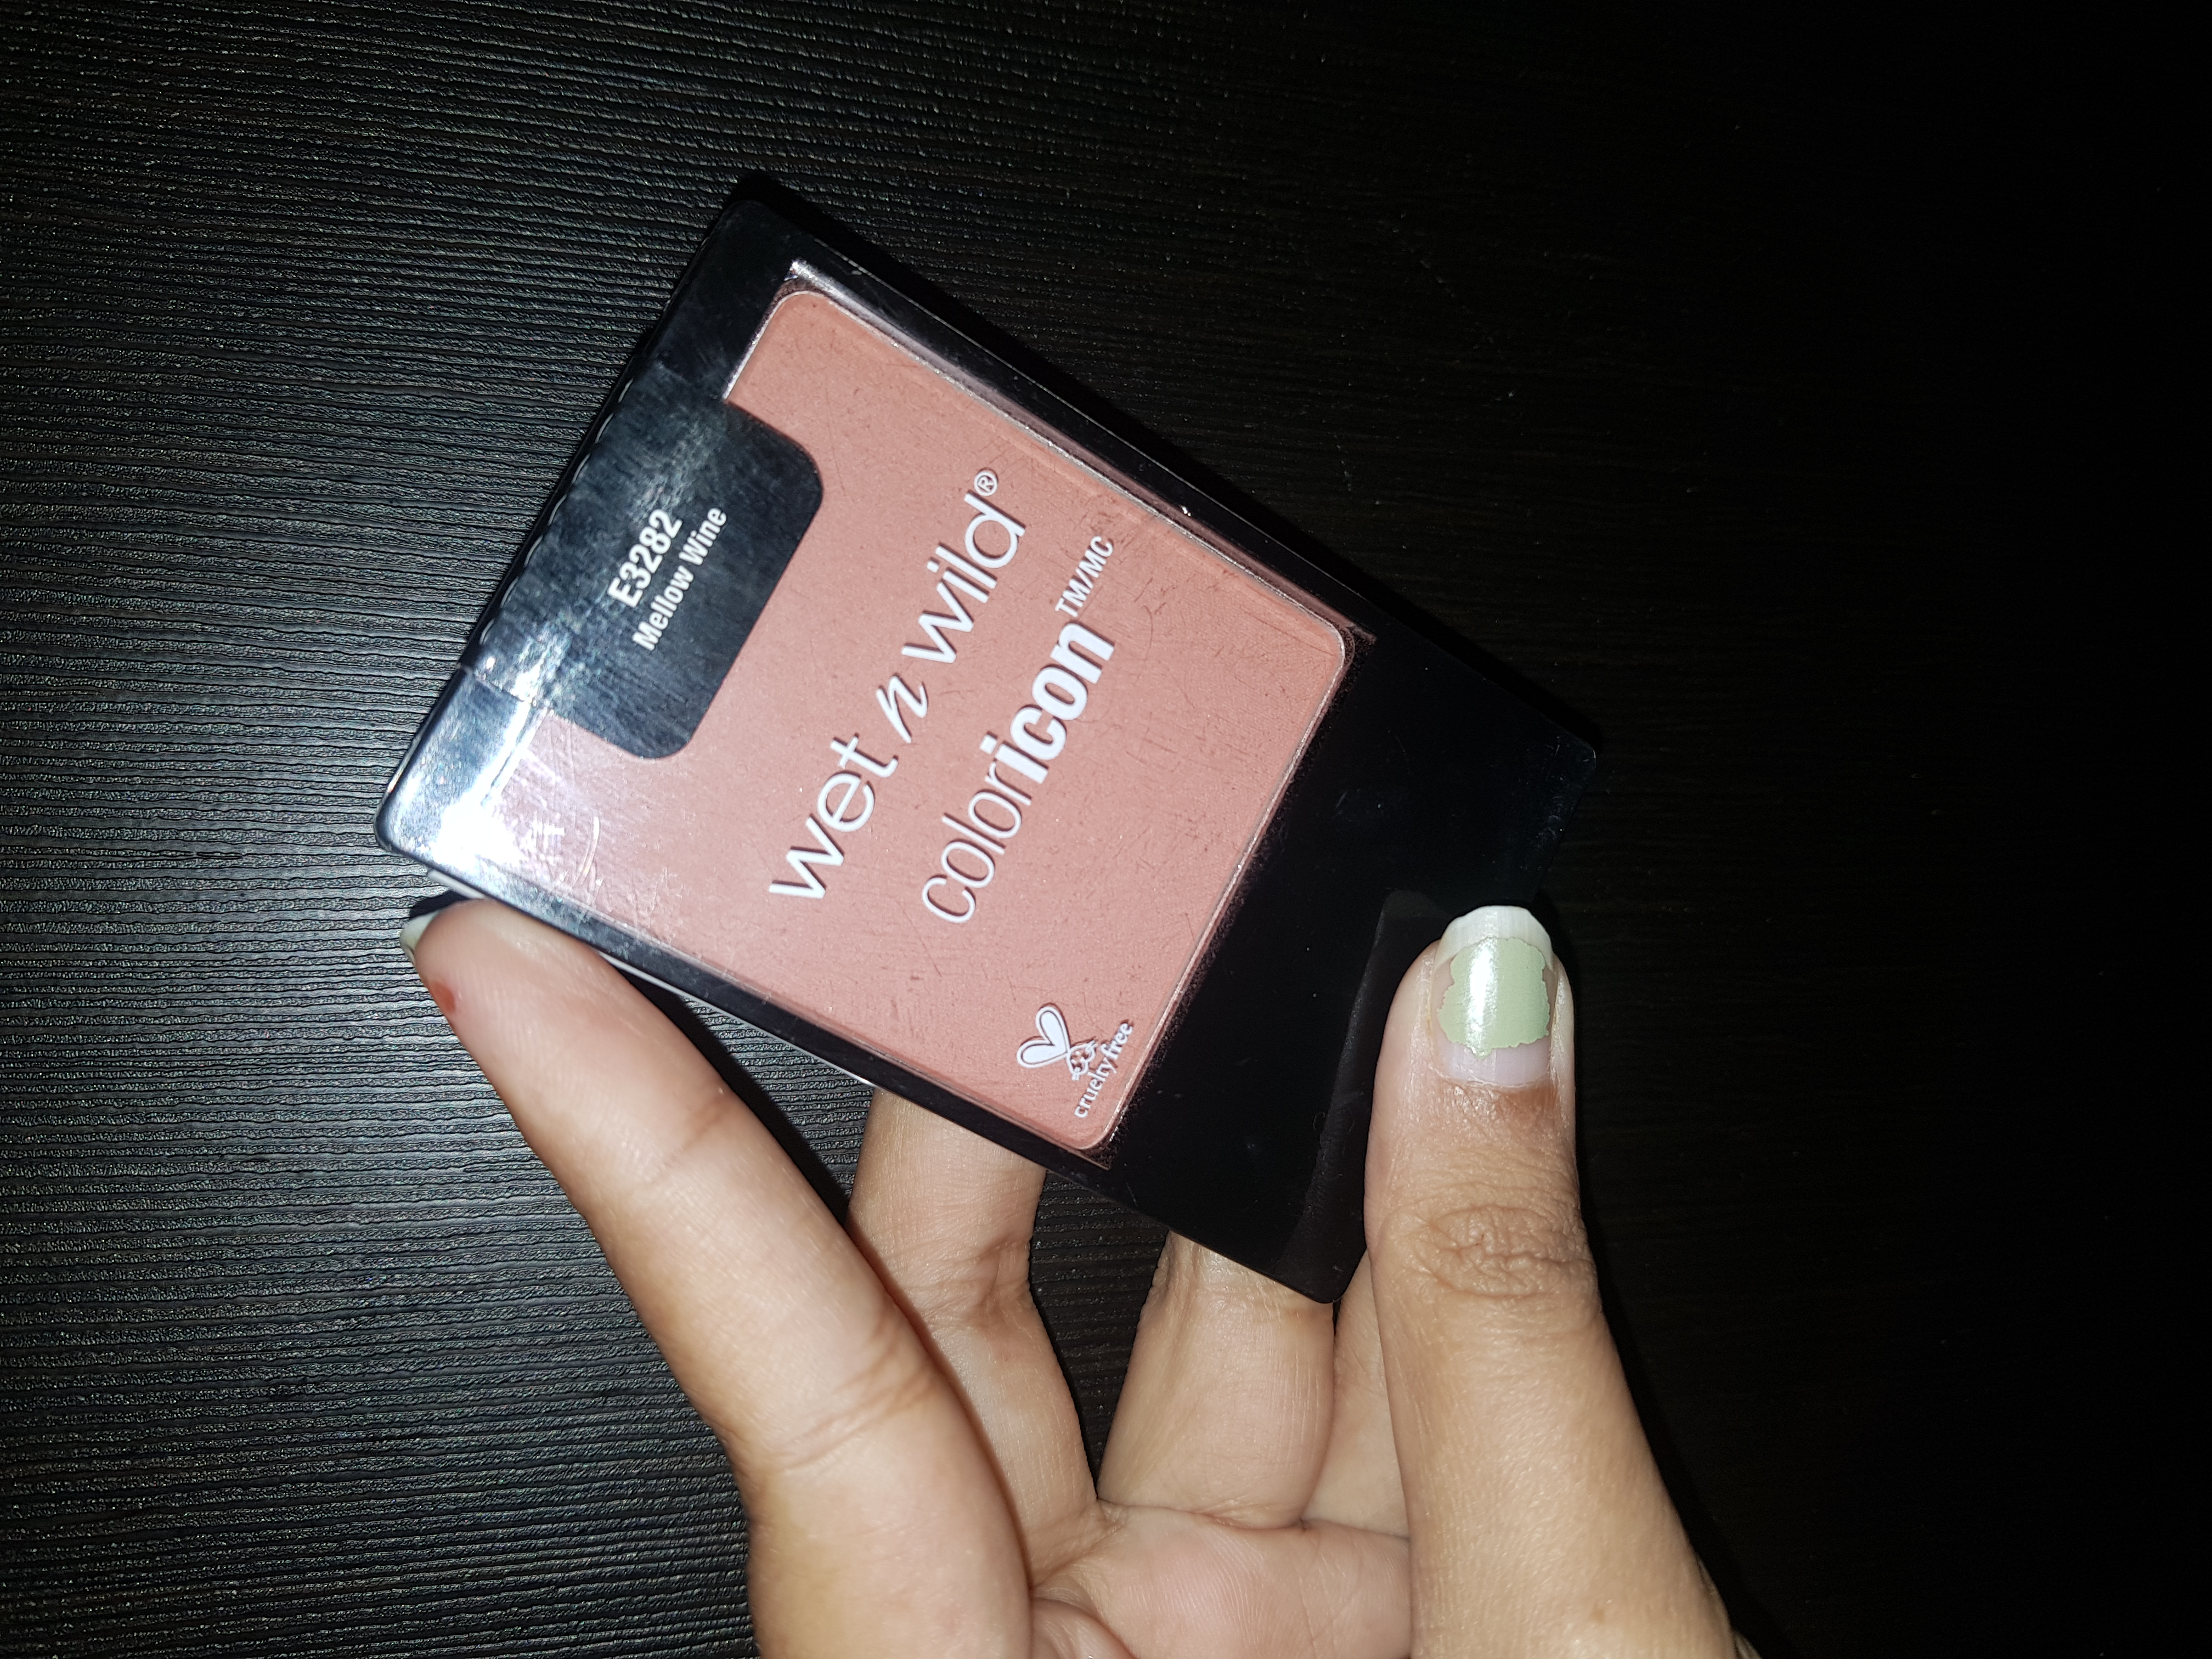 Wet n Wild Color Icon Blush-Absolutely favourite-By nessa